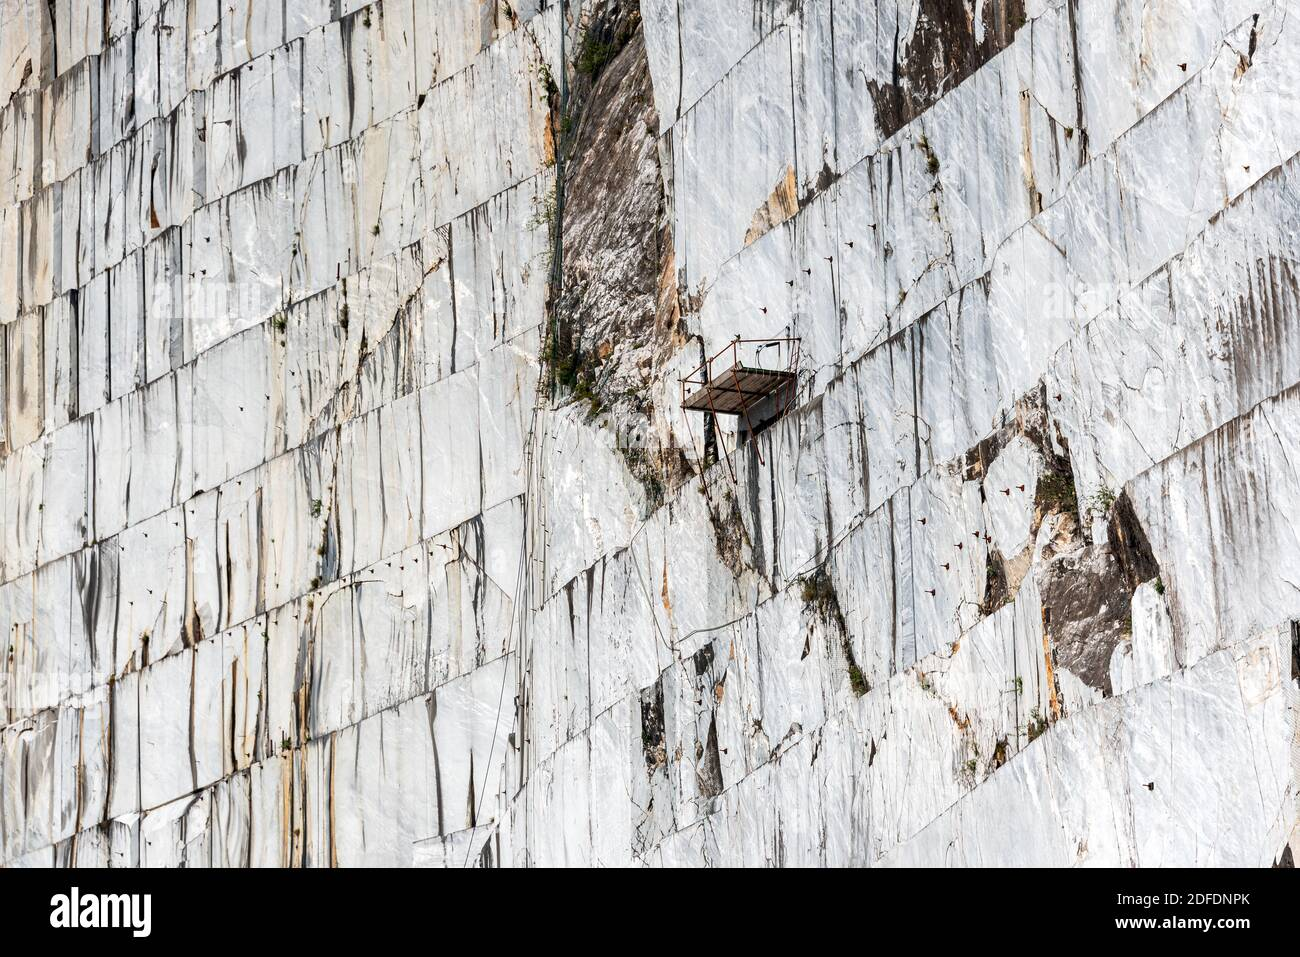 Marble quarry in Carrara, Italy, where Michelangelo got the material for his sculptures. This is the stone wall from which large marble slabs are cut Stock Photo